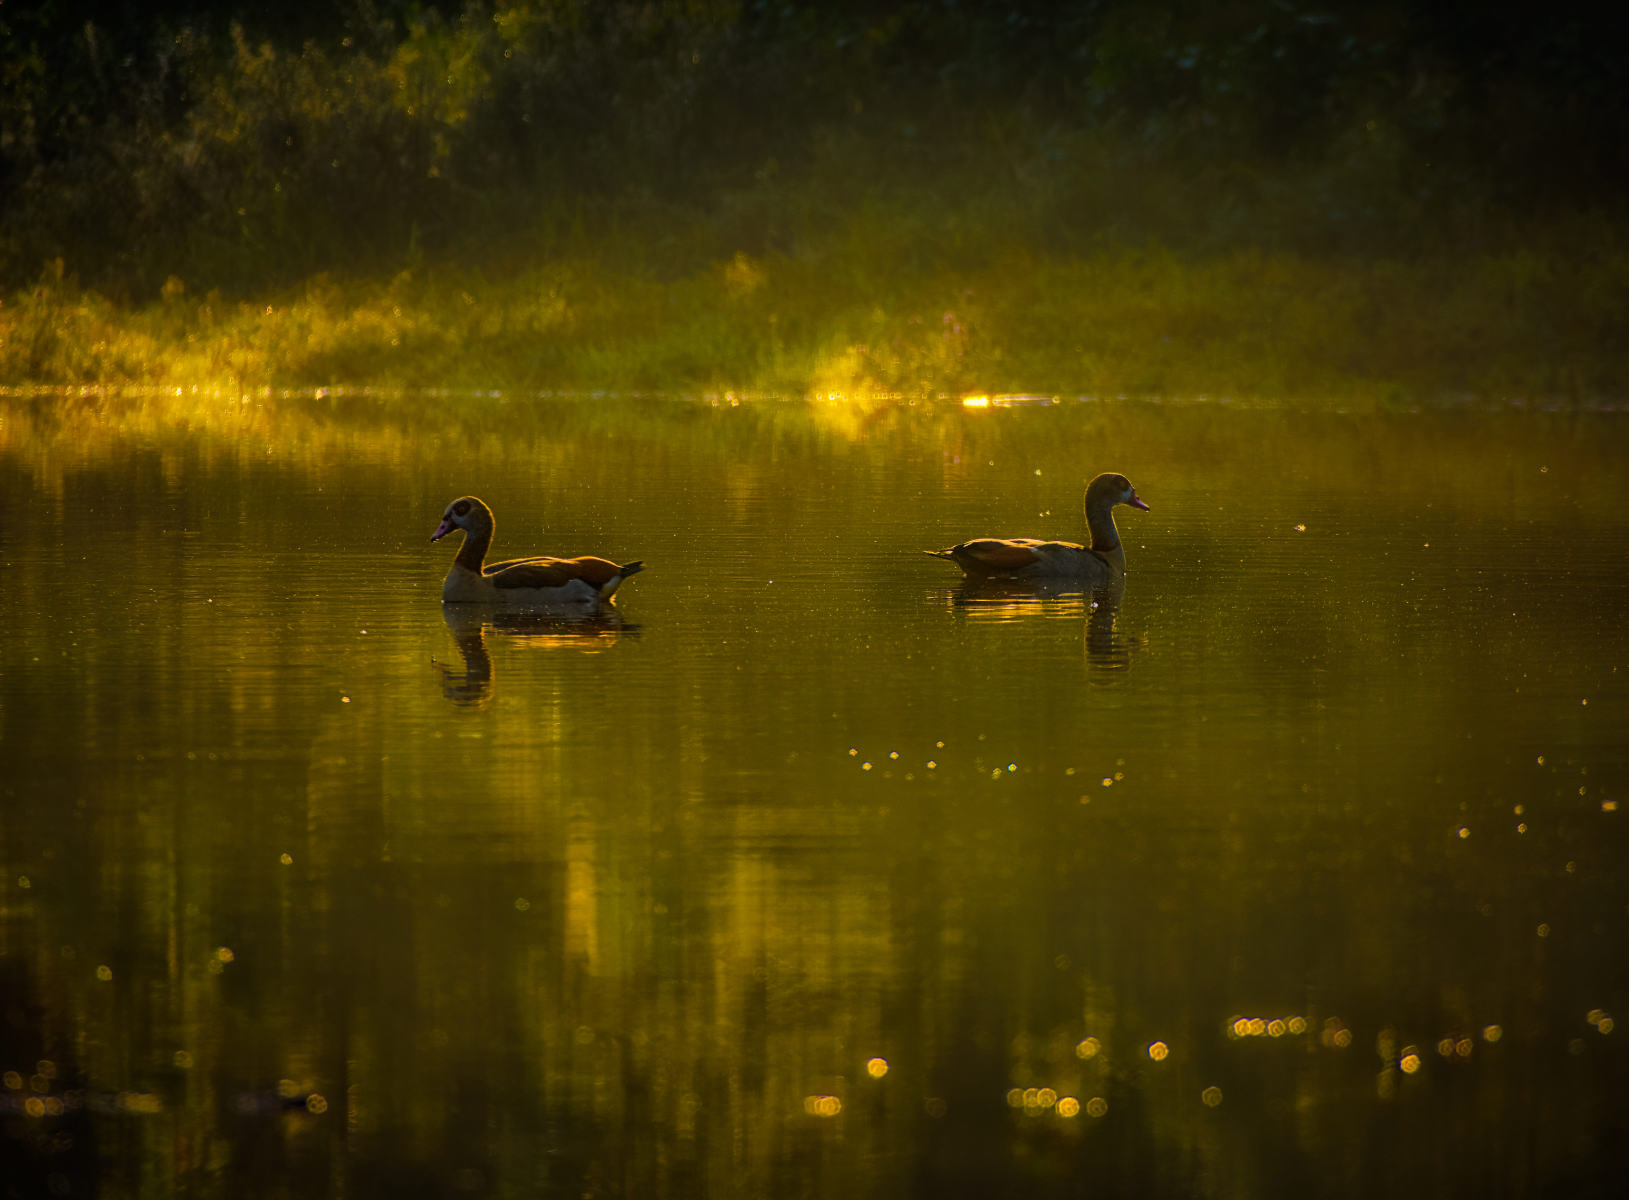 magical play of light in pond